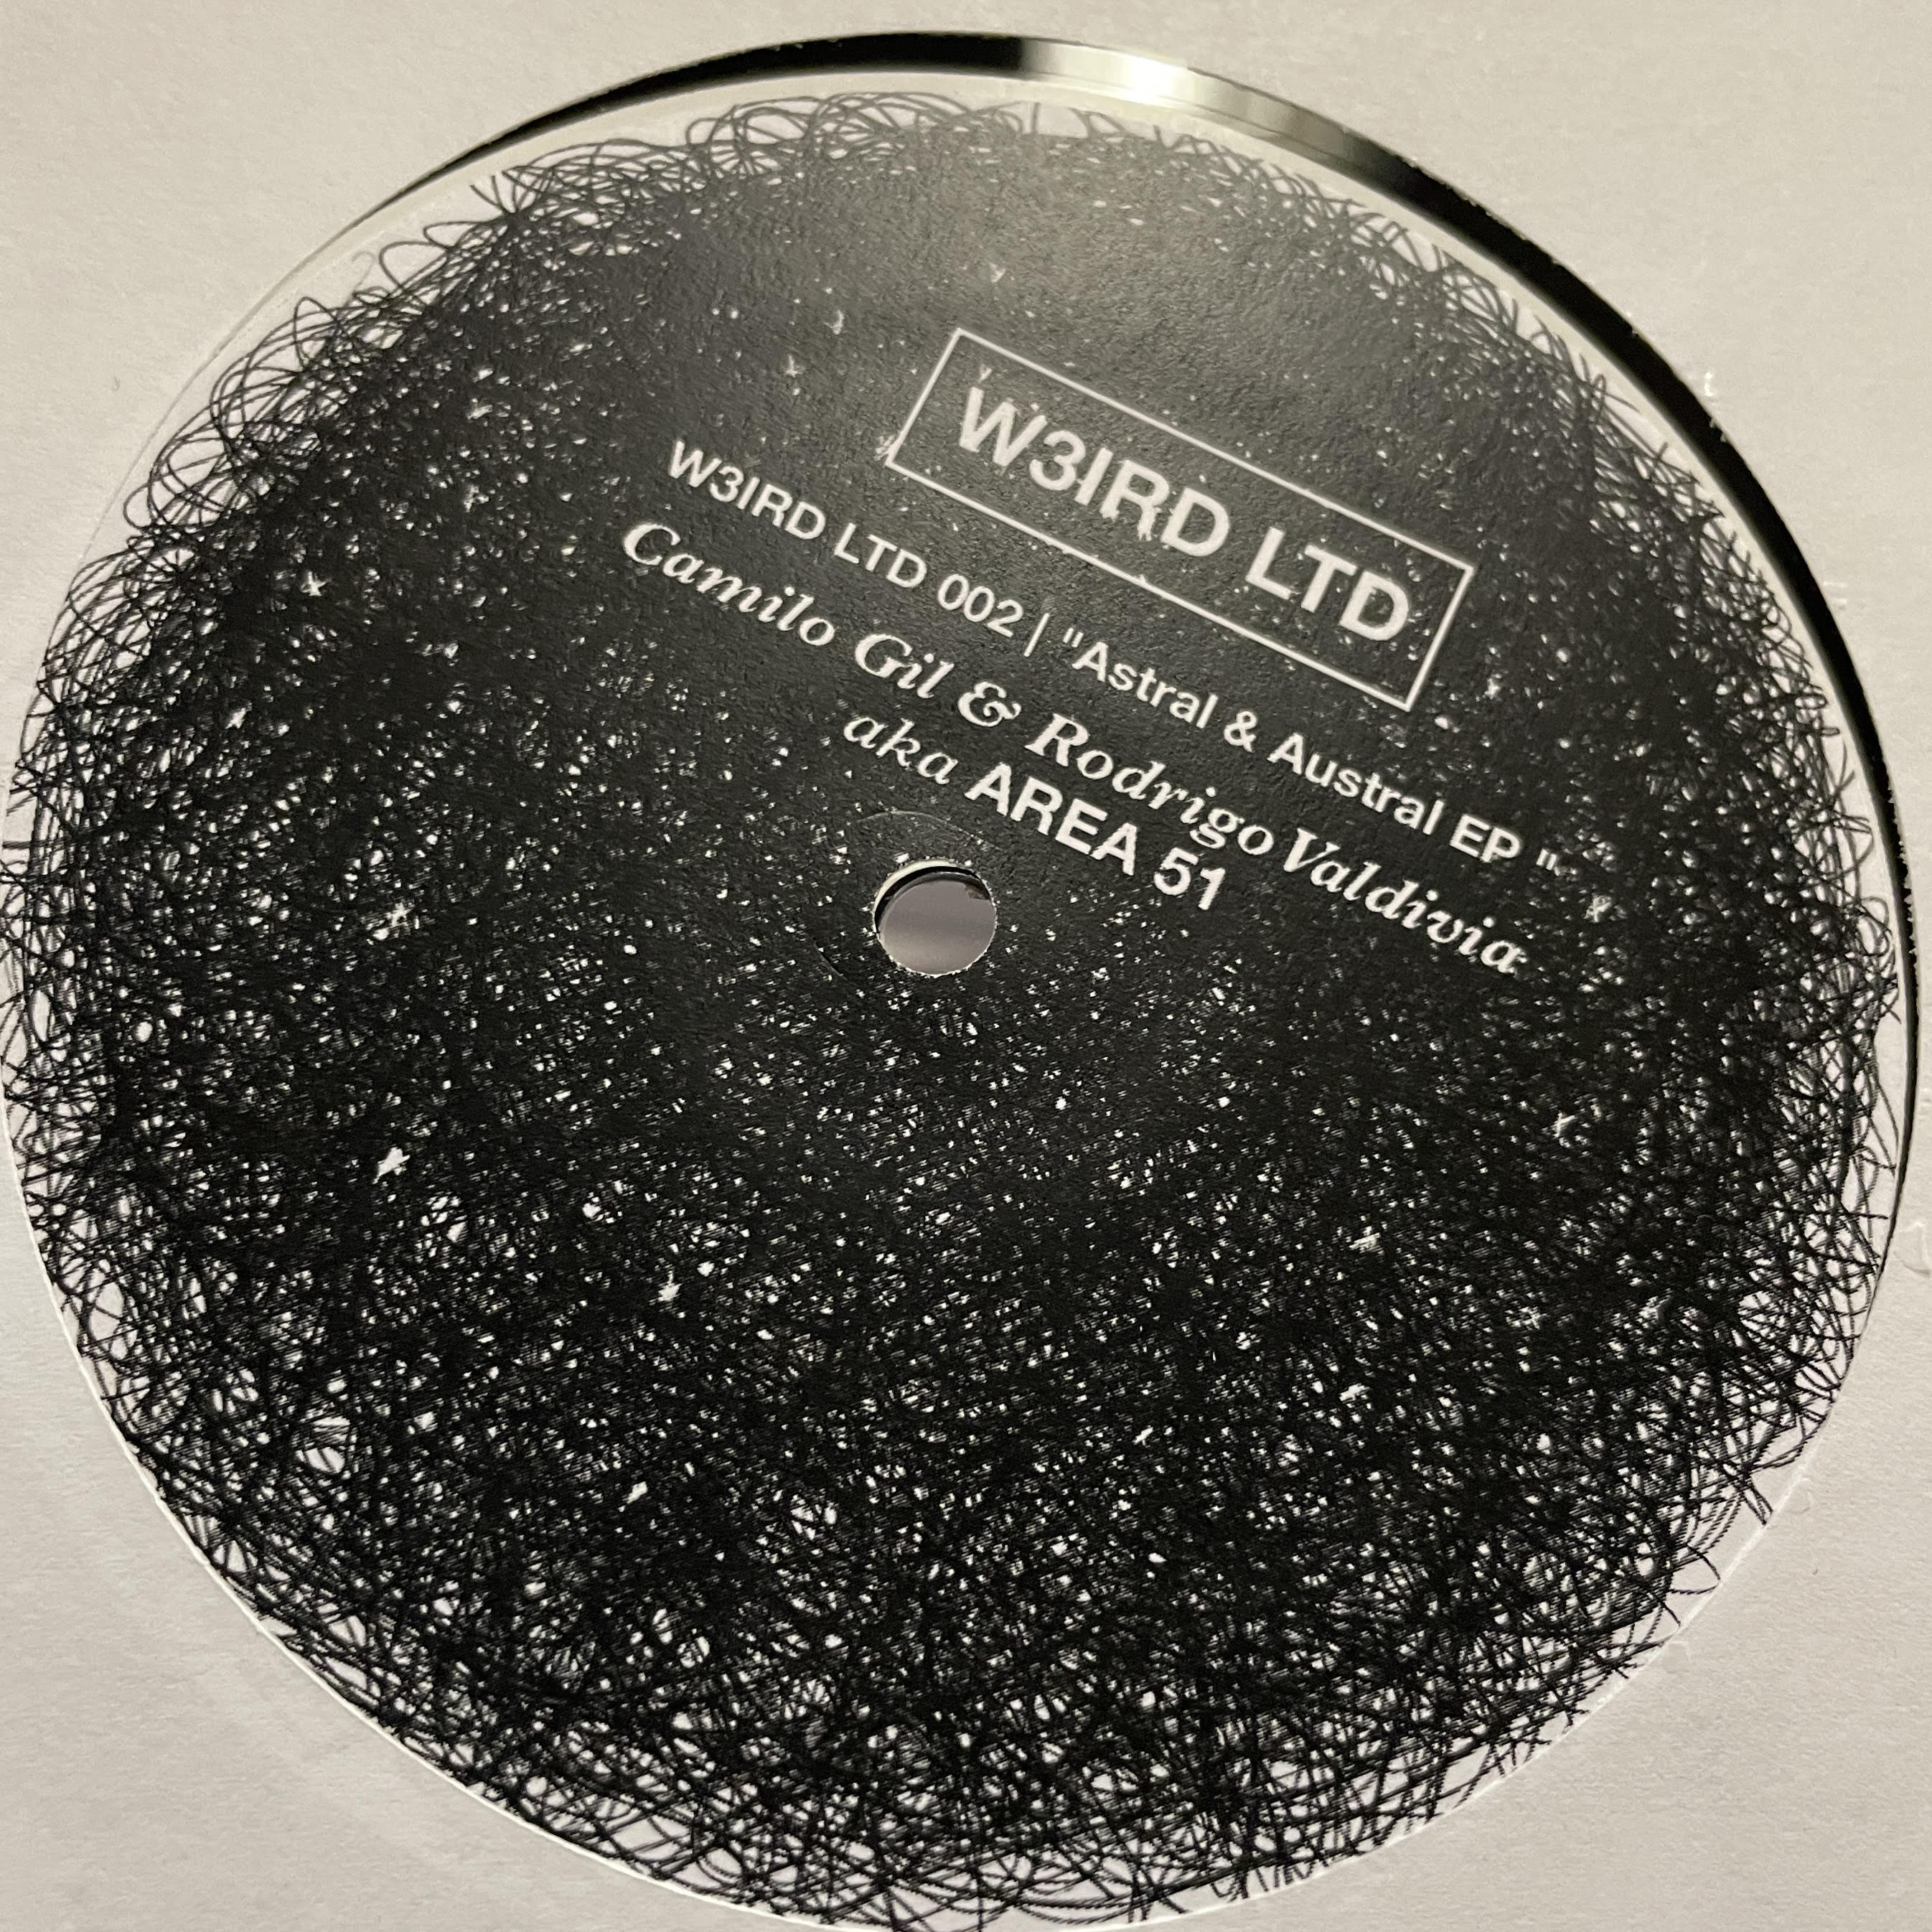 Area 51/ASTRAL & AUSTRAL EP 12""